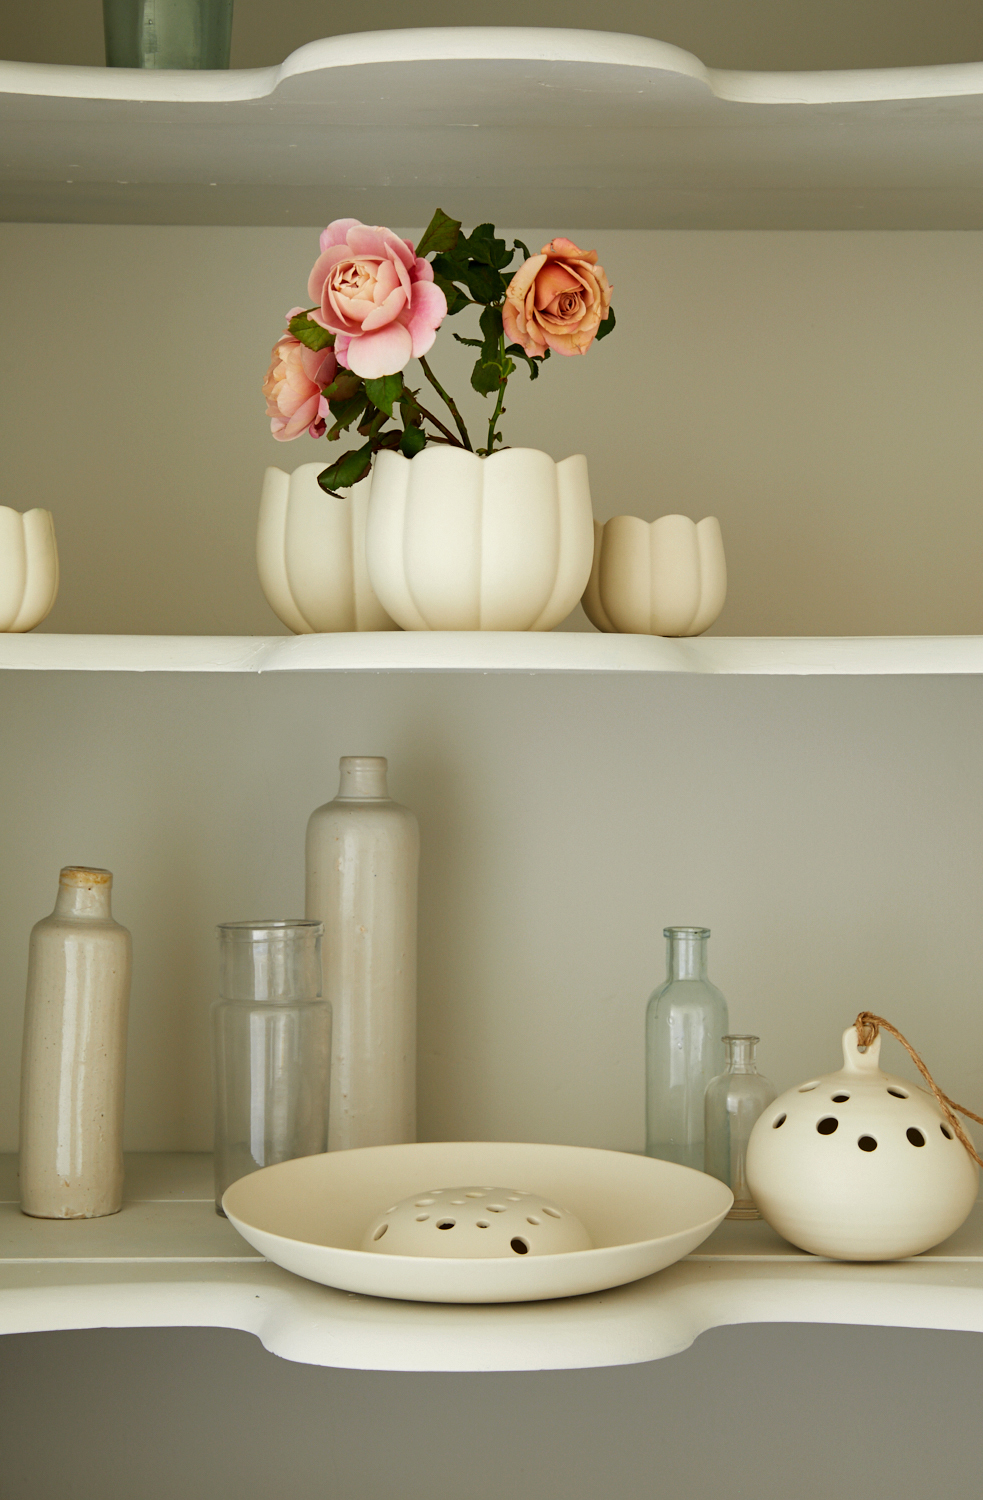 ceramic floral display on shelves